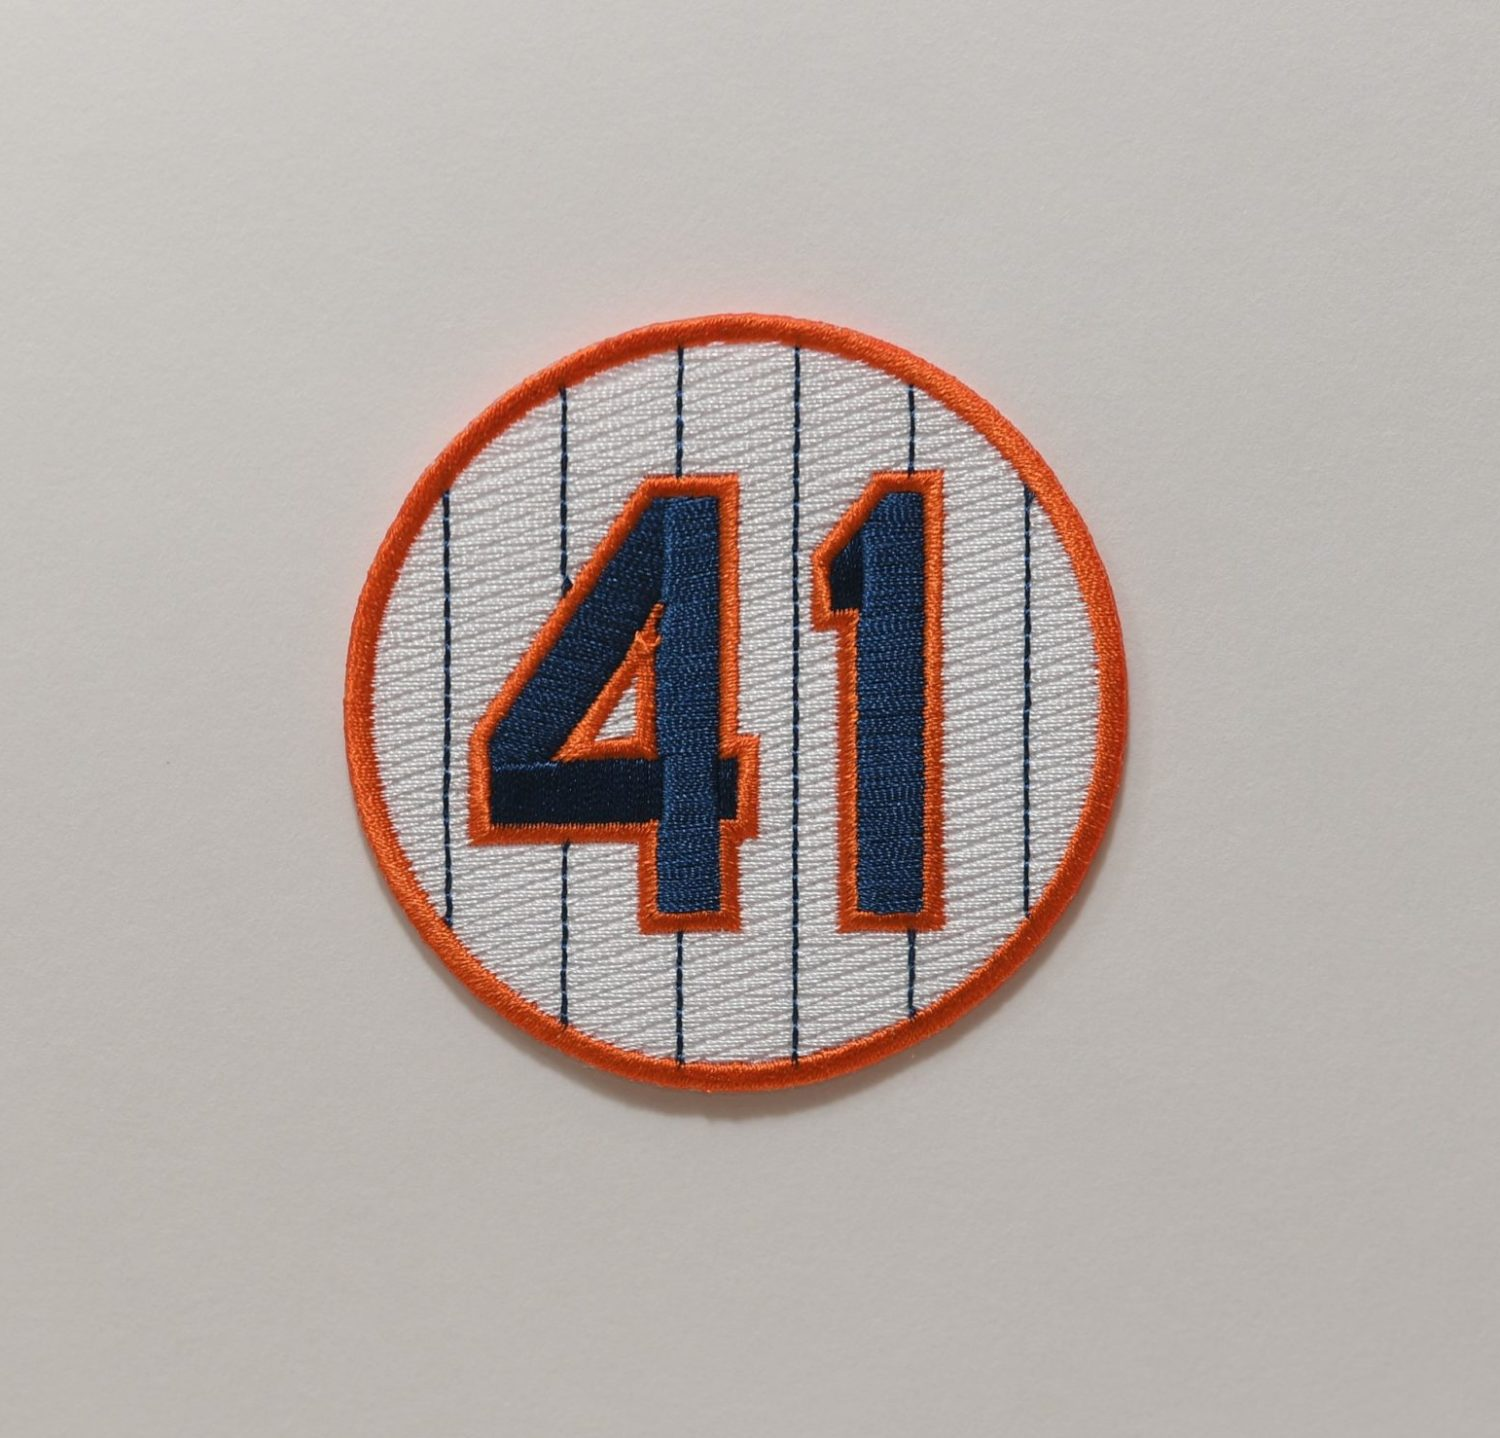 Circle patch with the number